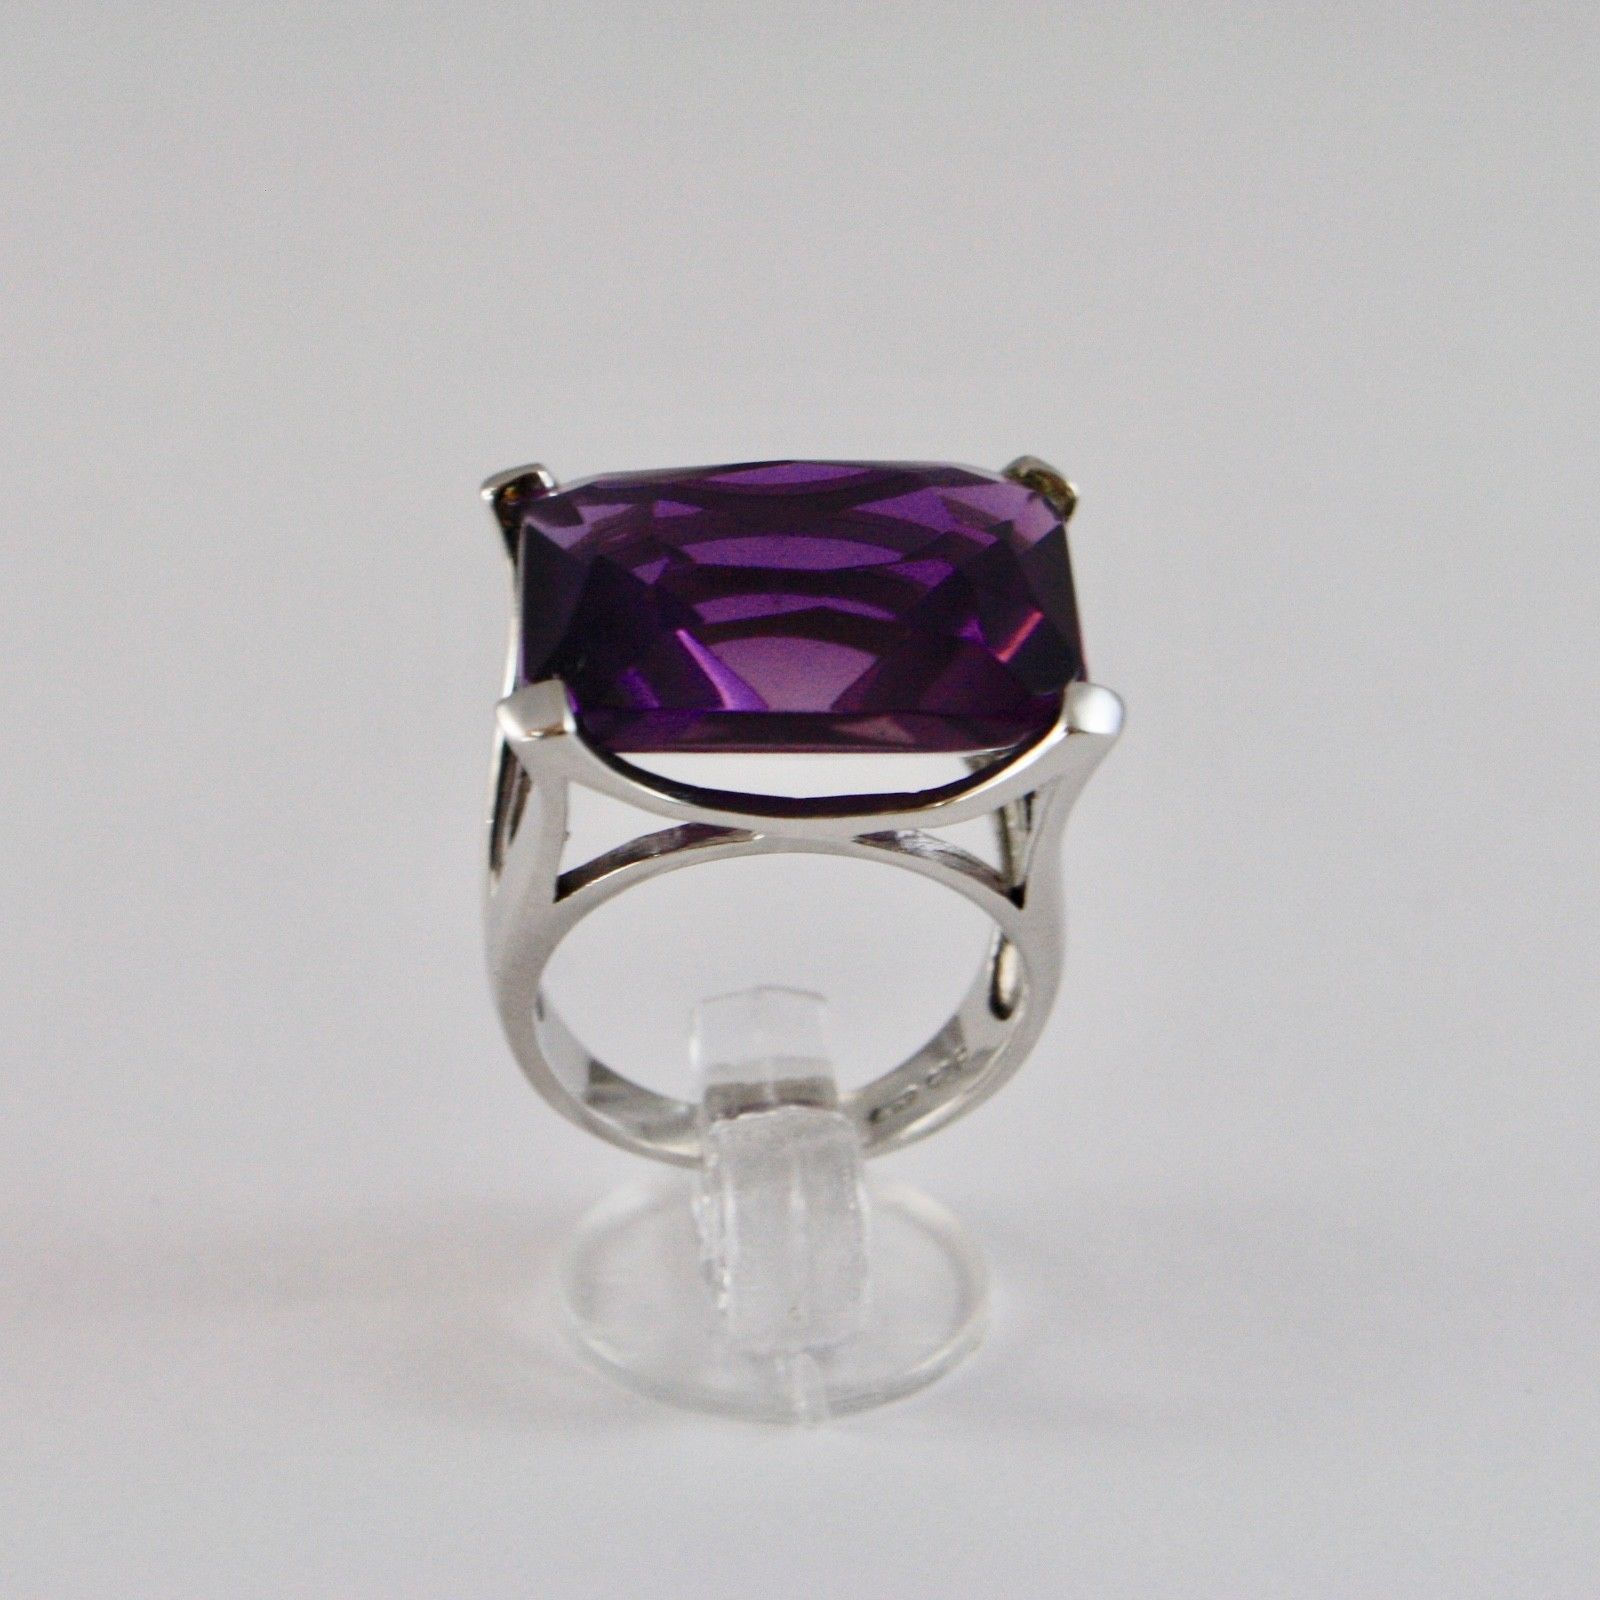 925 SILVER RING RHODIUM WITH SQUARE WITH CRYSTAL PURPLE RECTANGULAR